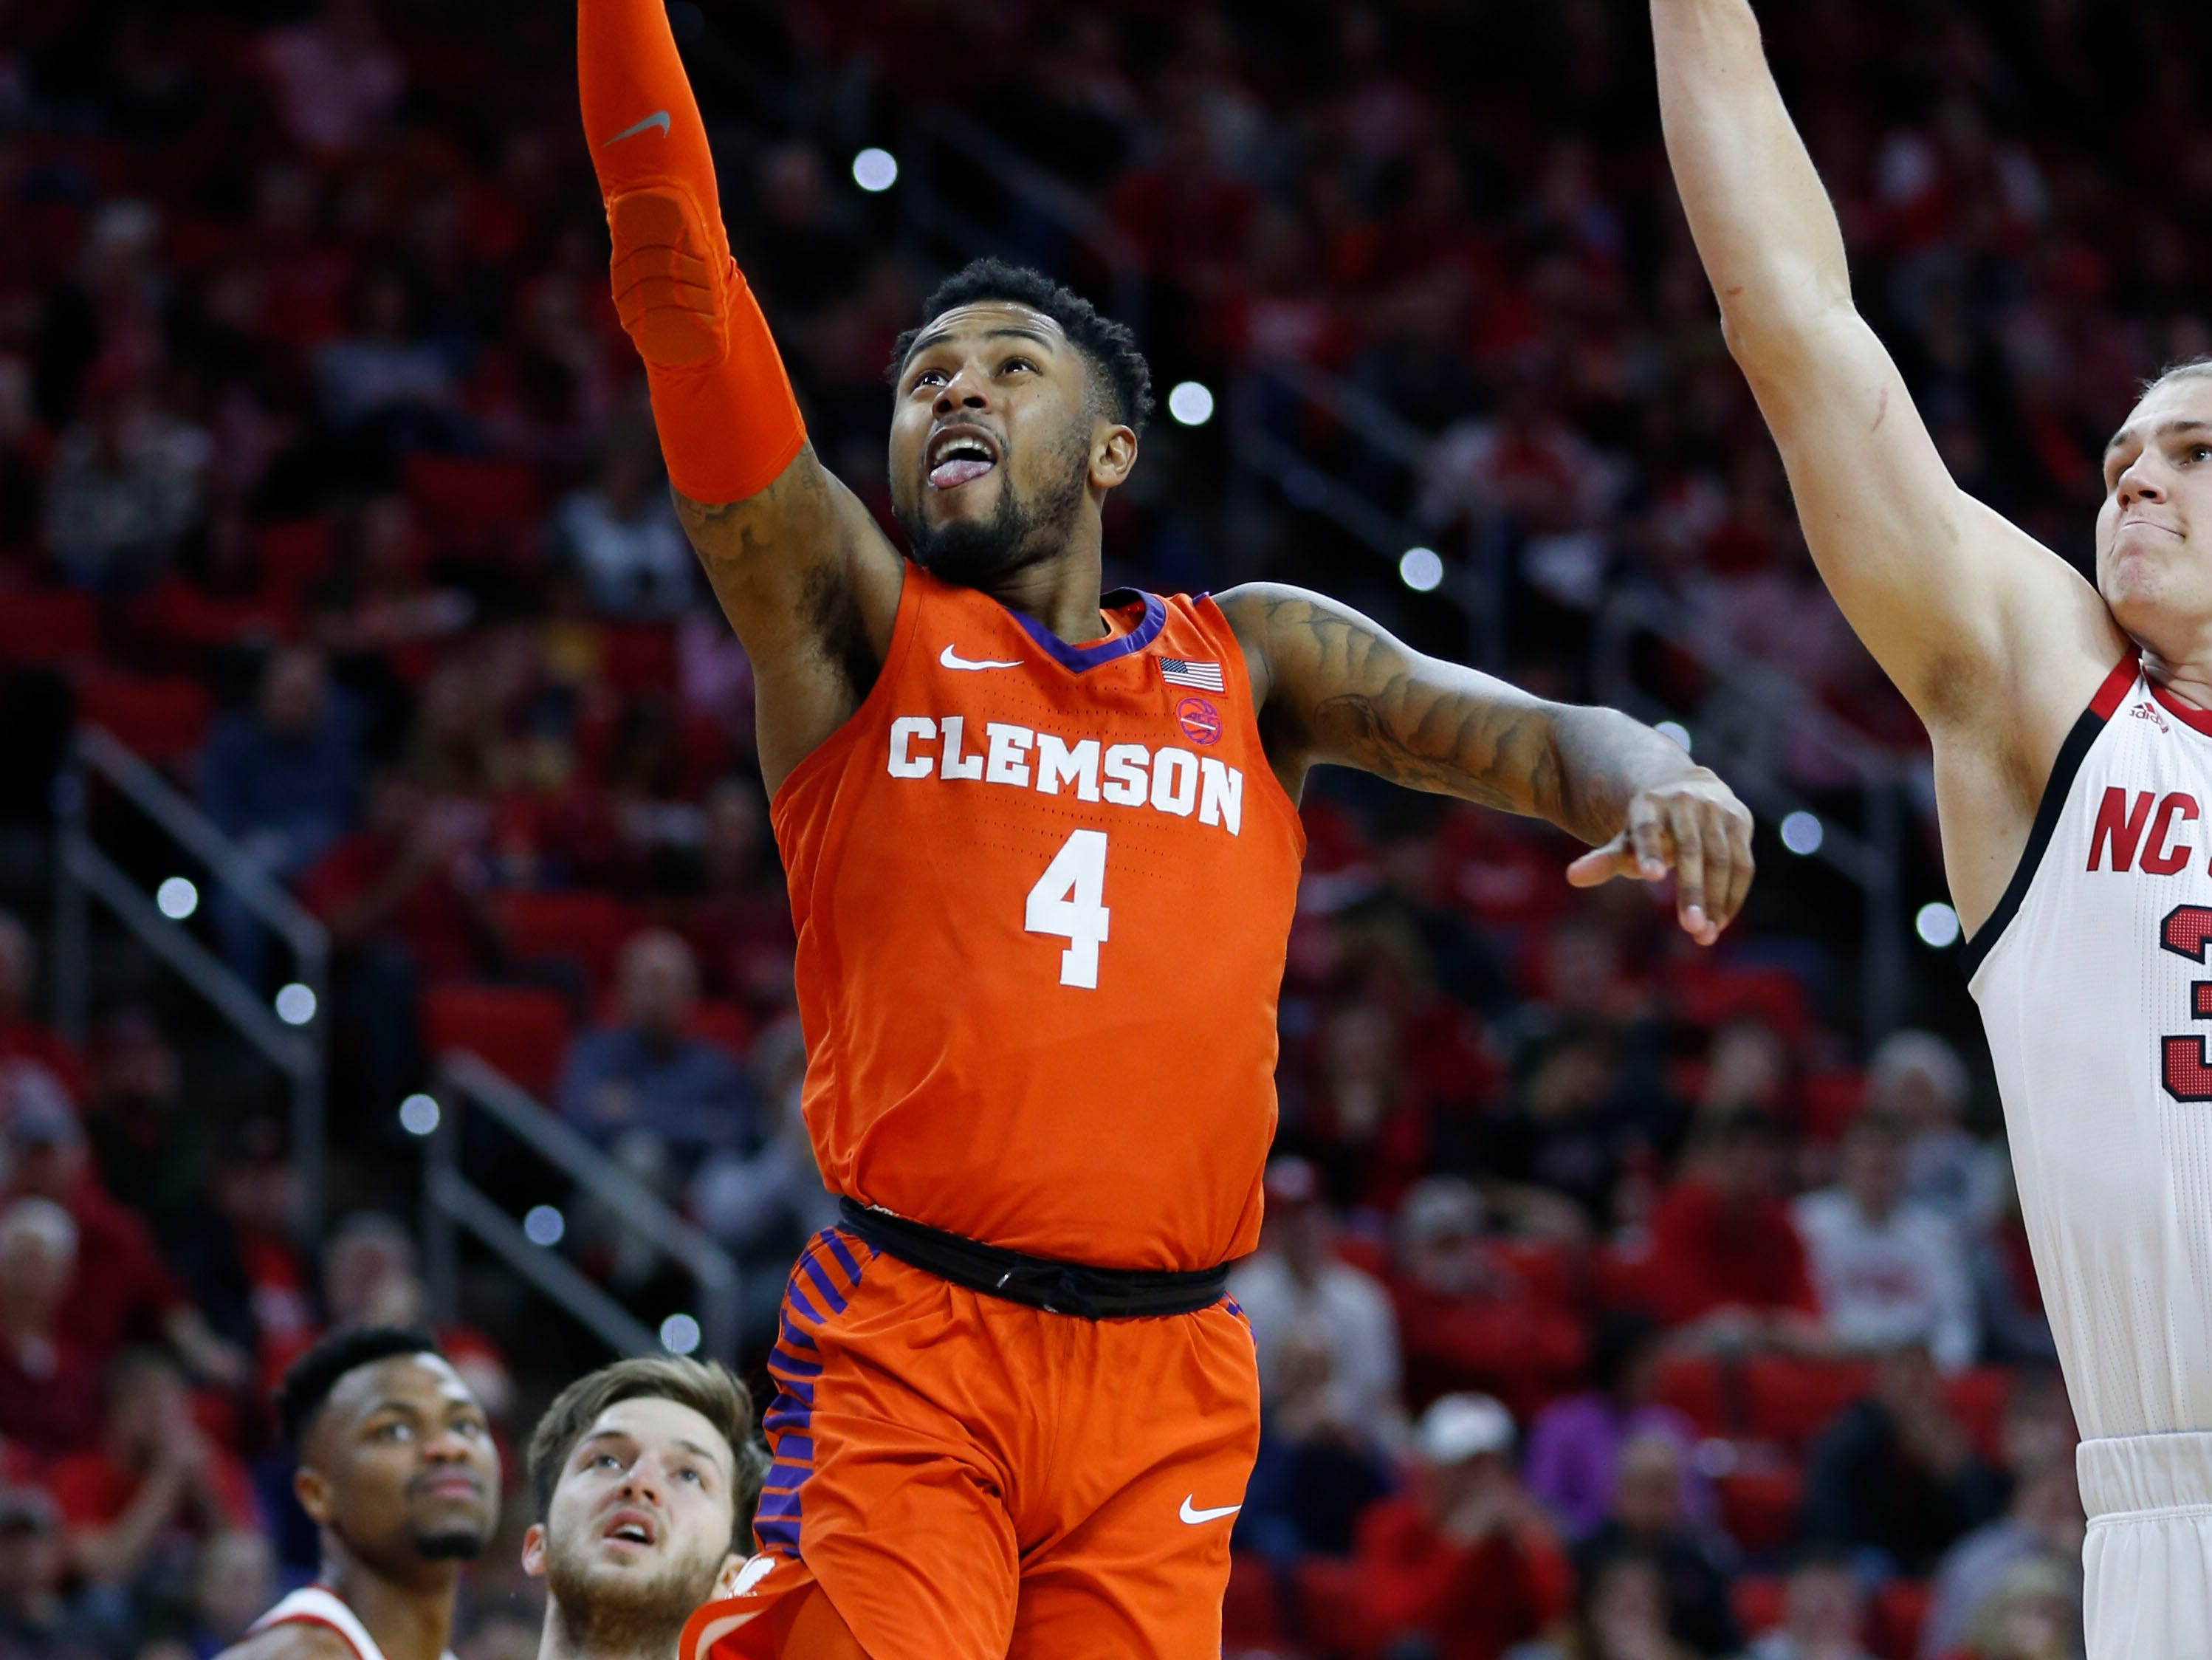 Jan 26, 2019; Raleigh, NC, USA; Clemson Tigers guard Shelton Mitchell (4) shoots the ball past North Carolina State Wolfpack guard Braxton Beverly (10) in the second half at PNC Arena. Mandatory Credit: Nell Redmond-USA TODAY Sports